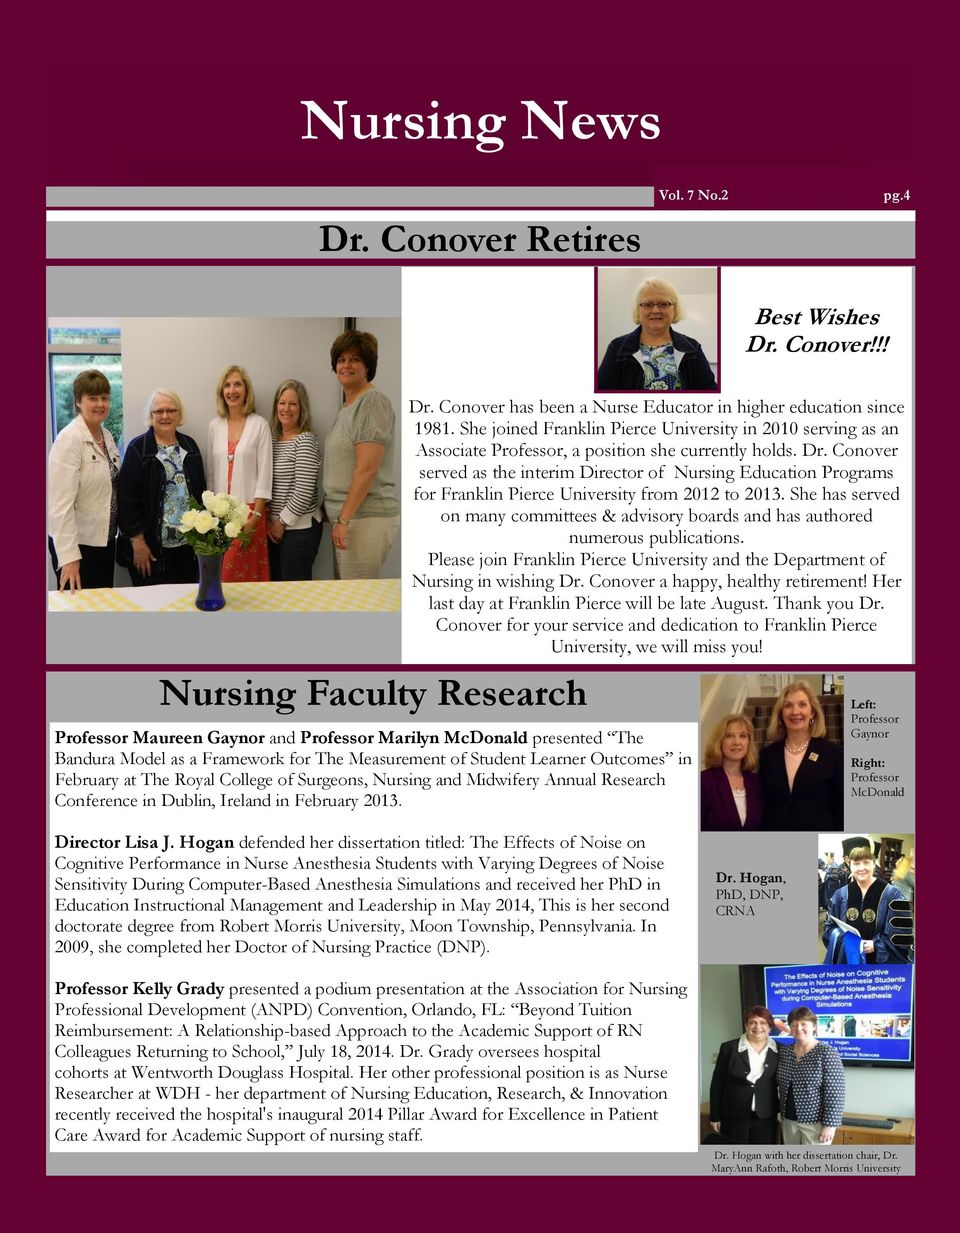 Conover served as the interim Director of Nursing Education Programs for Franklin Pierce University from 2012 to 2013.